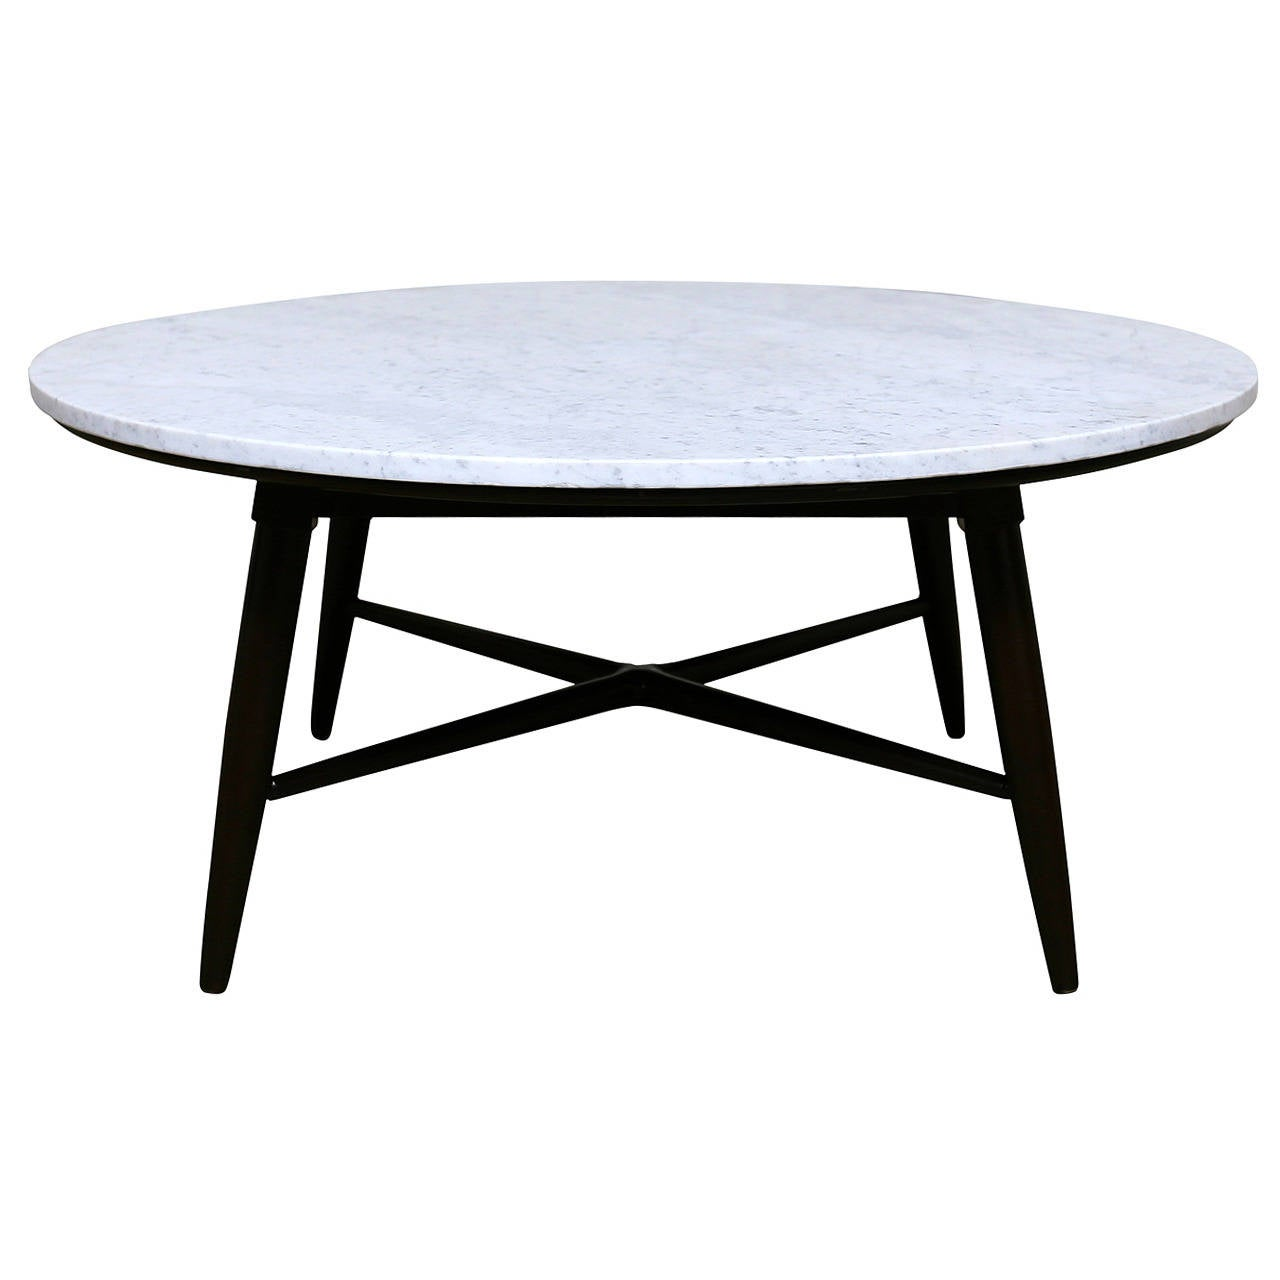 Round marble x base coffee table at 1stdibs Round marble coffee tables